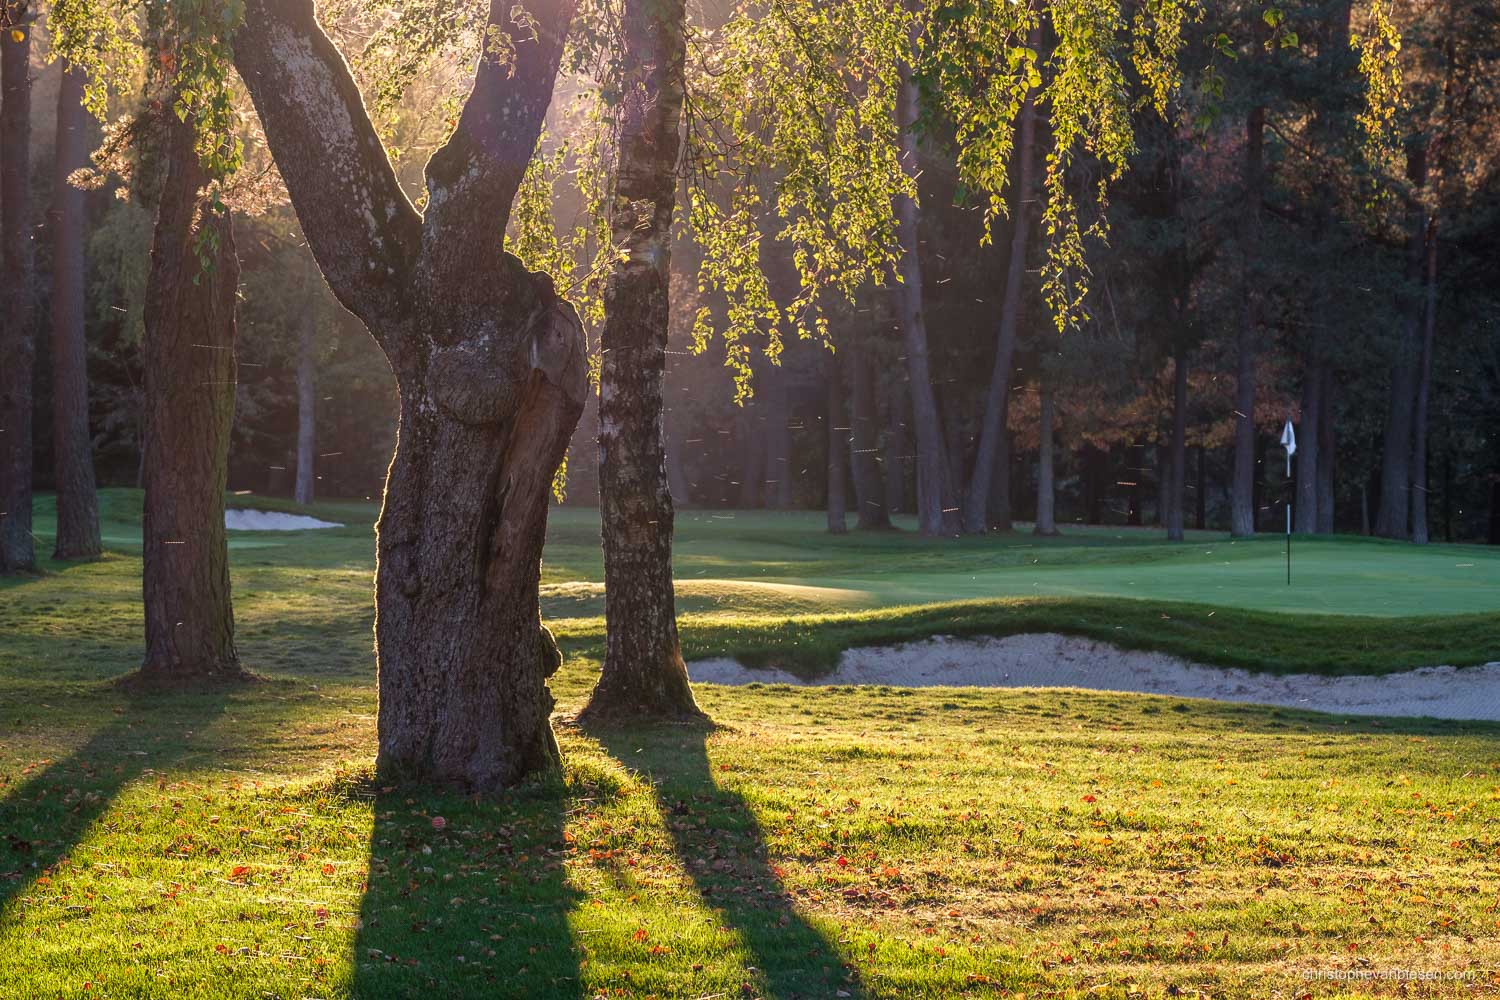 Work with me - Commission Work - Golf Club Grand Ducal Luxembourg Senningerberg - Hole 8 - Photography by Christophe Van Biesen - Luxembourg Landscape and Travel Photographer